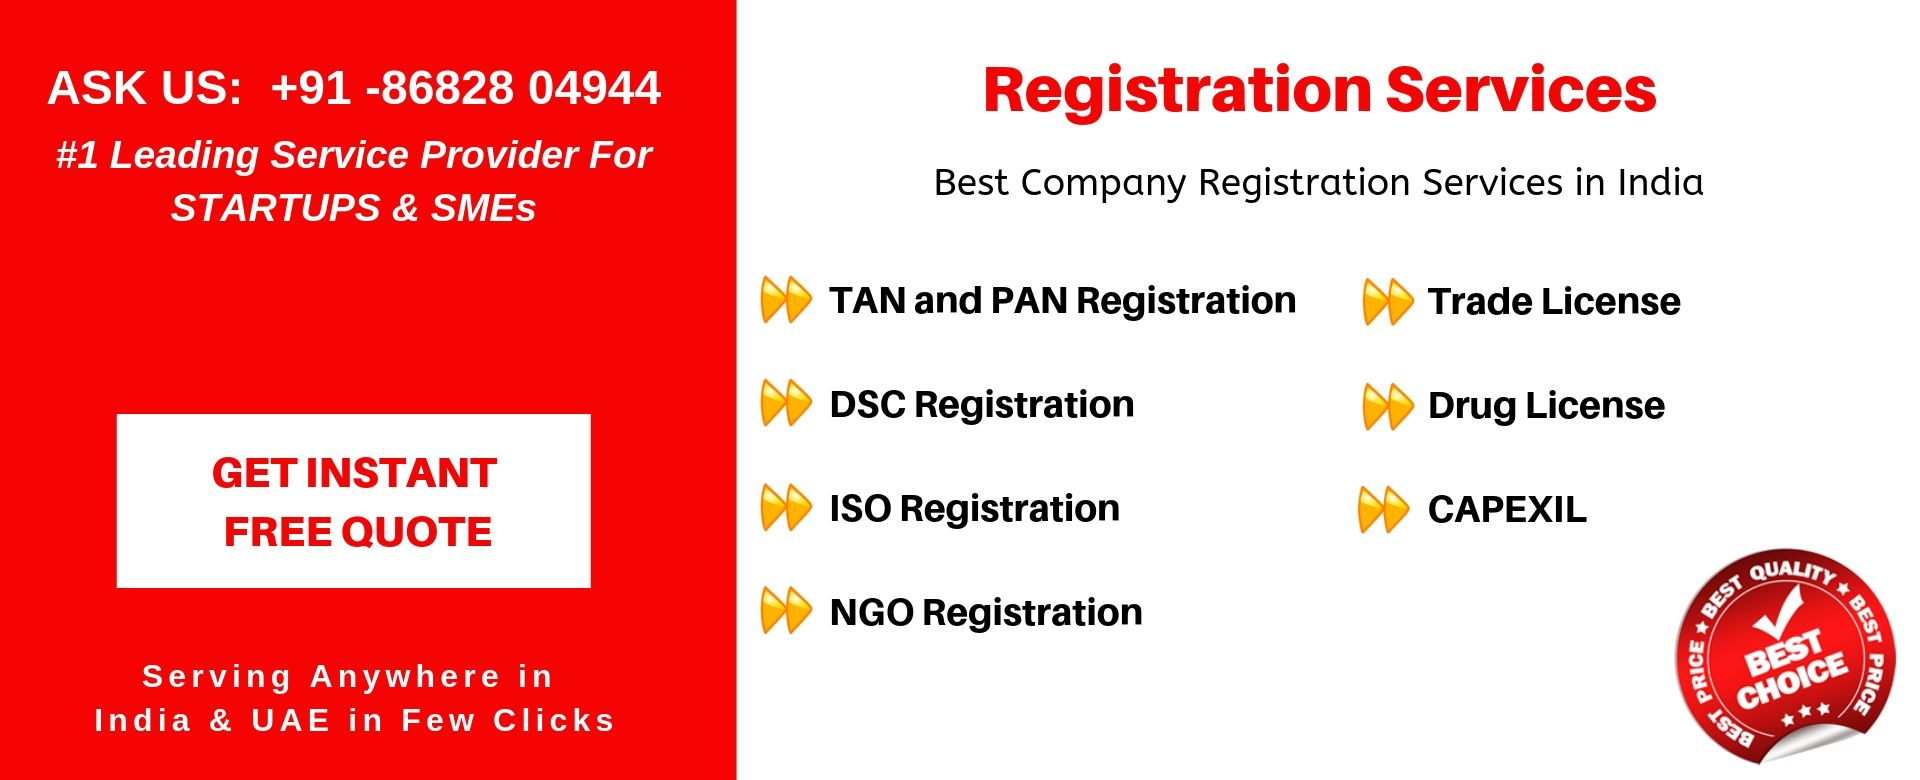 registration services in india